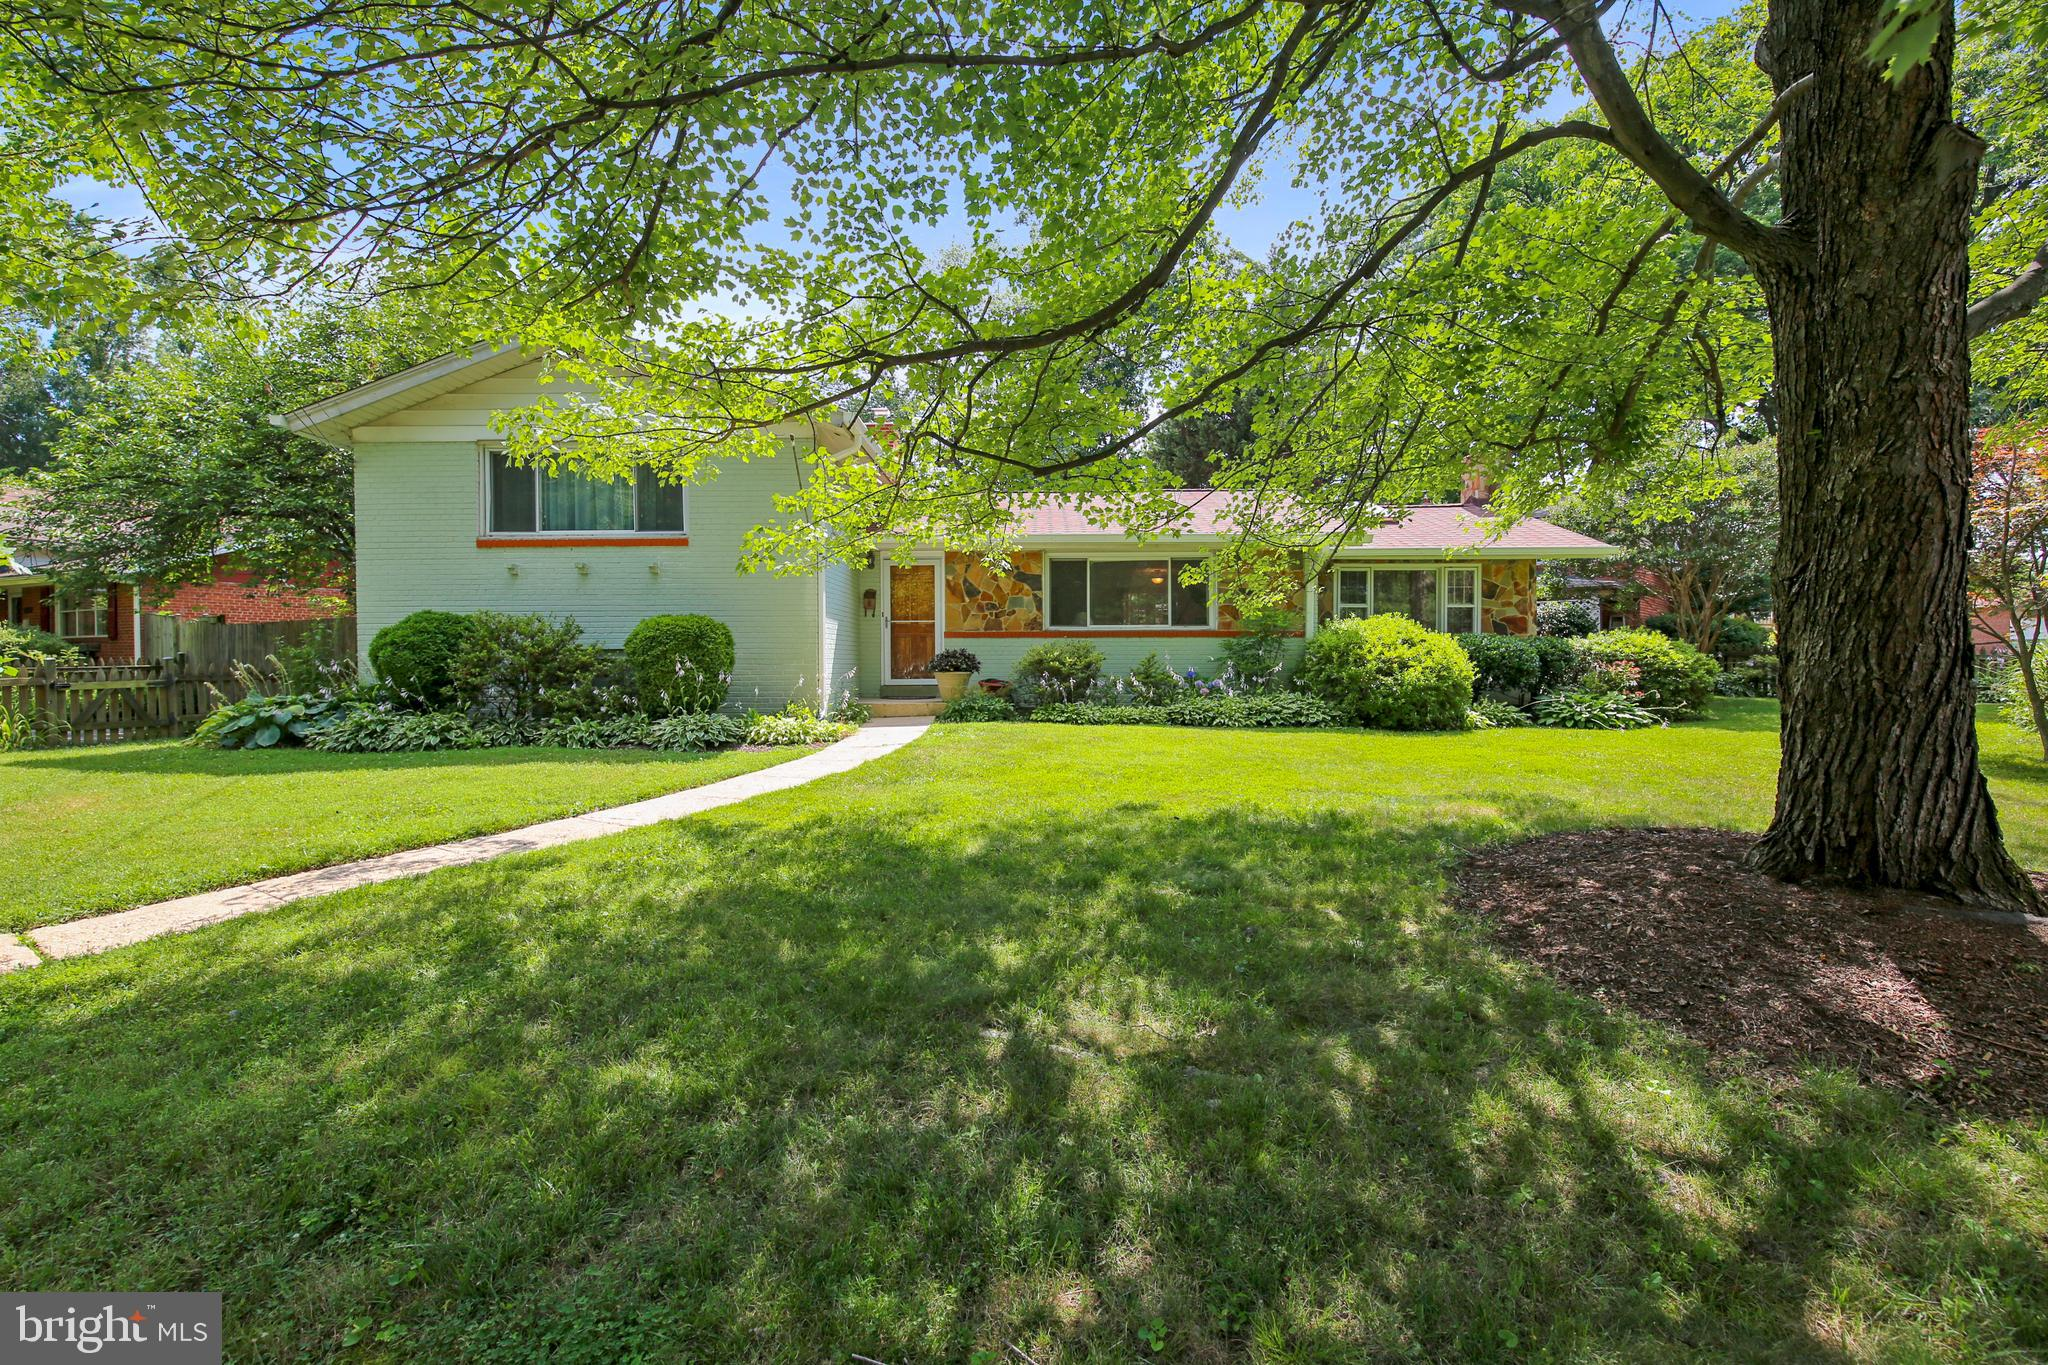 10414 HUTTING PLACE, SILVER SPRING, MD 20902